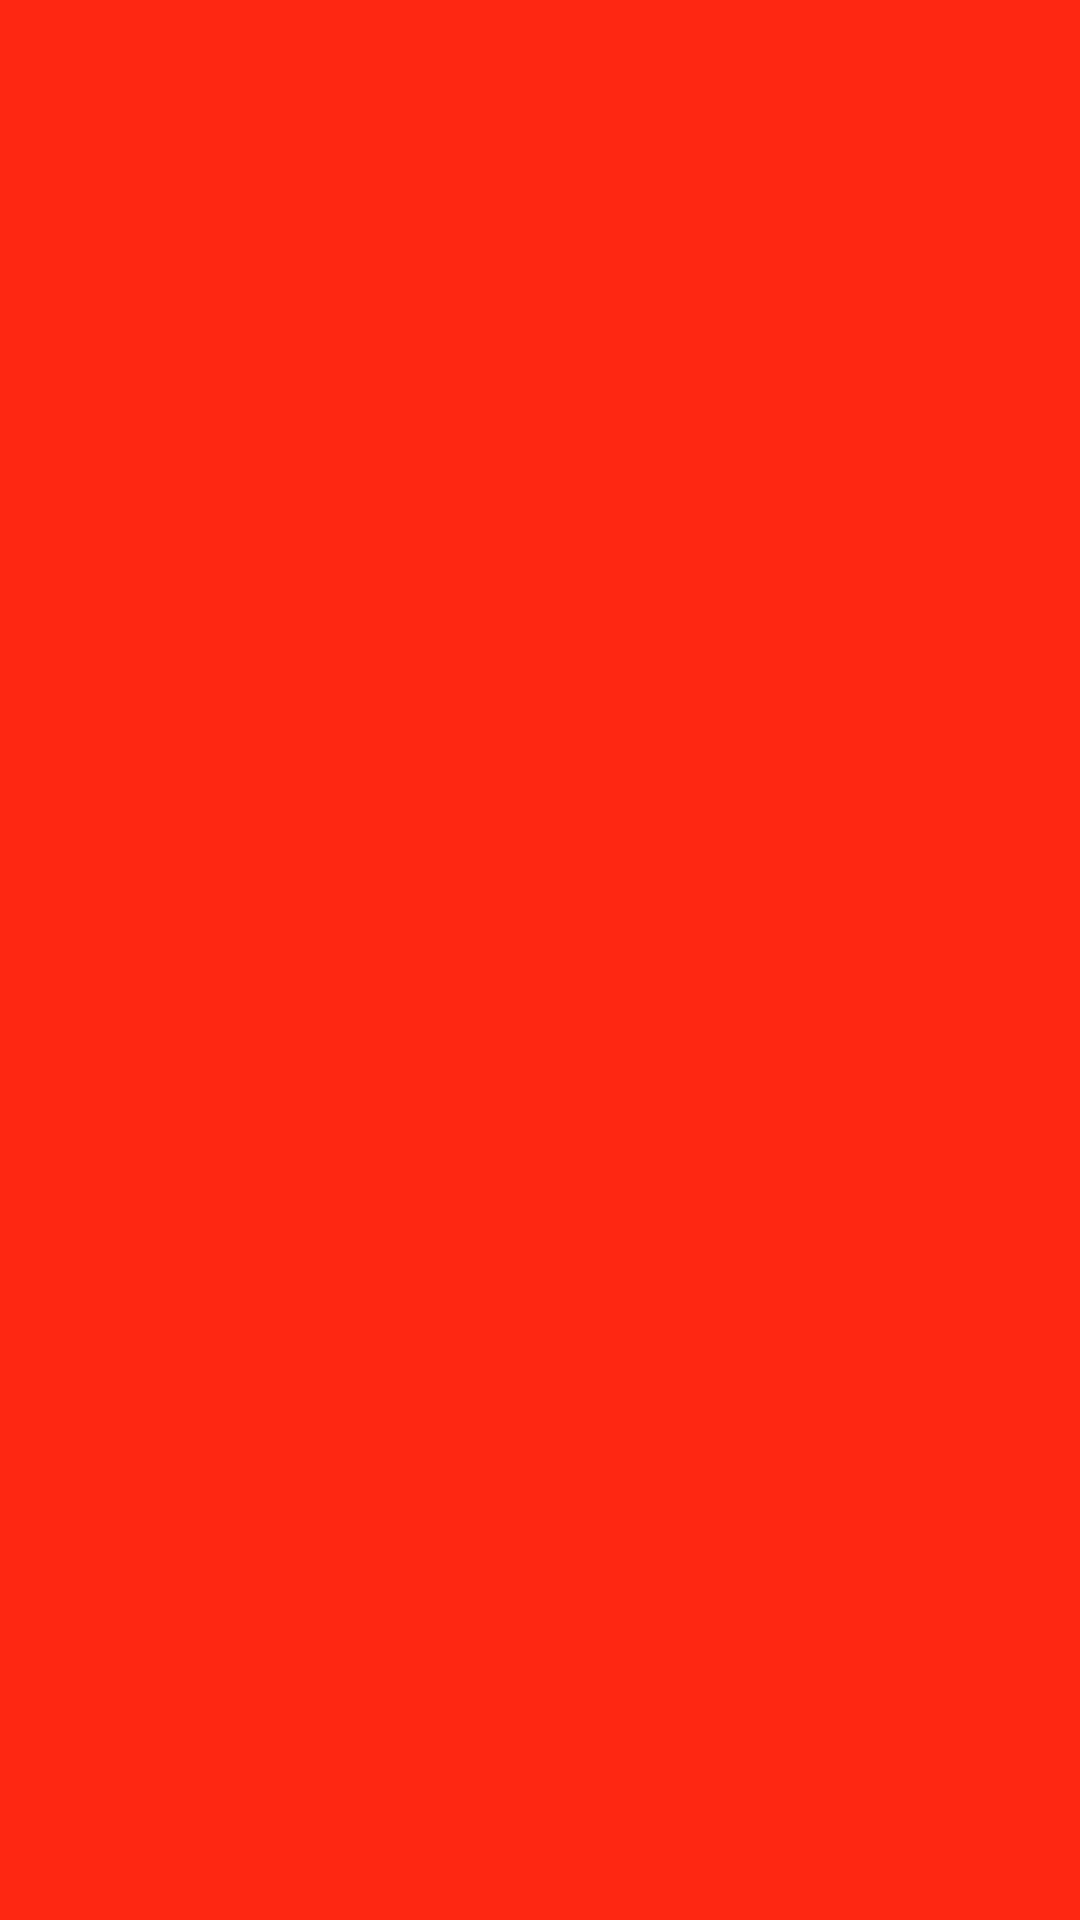 1080x1920 Red RYB Solid Color Background